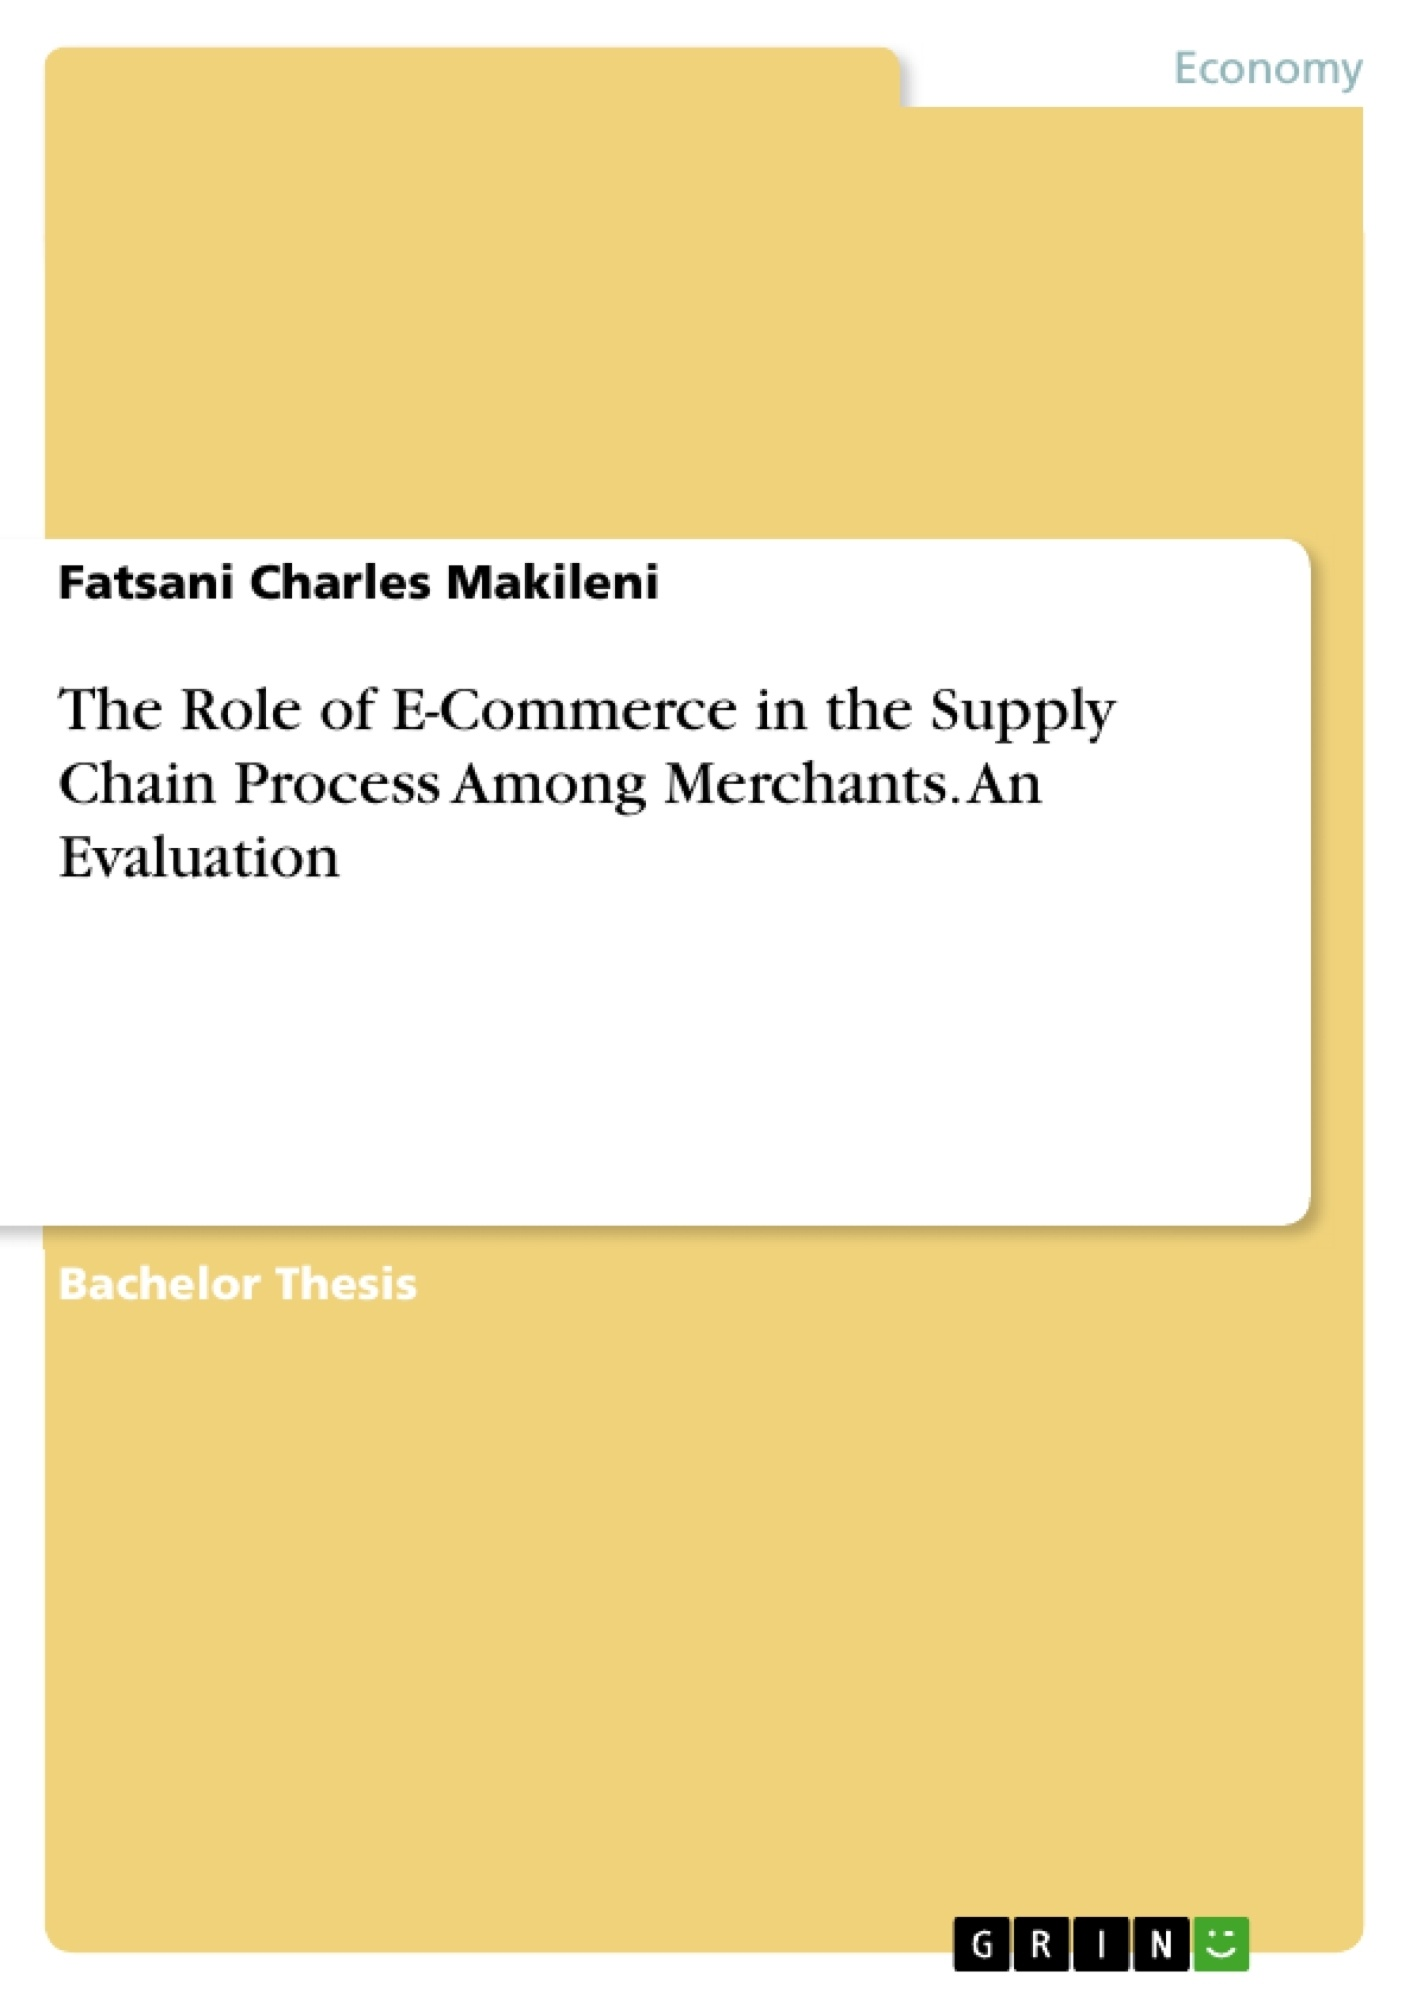 Title: The Role of E-Commerce in the Supply Chain Process Among Merchants. An Evaluation